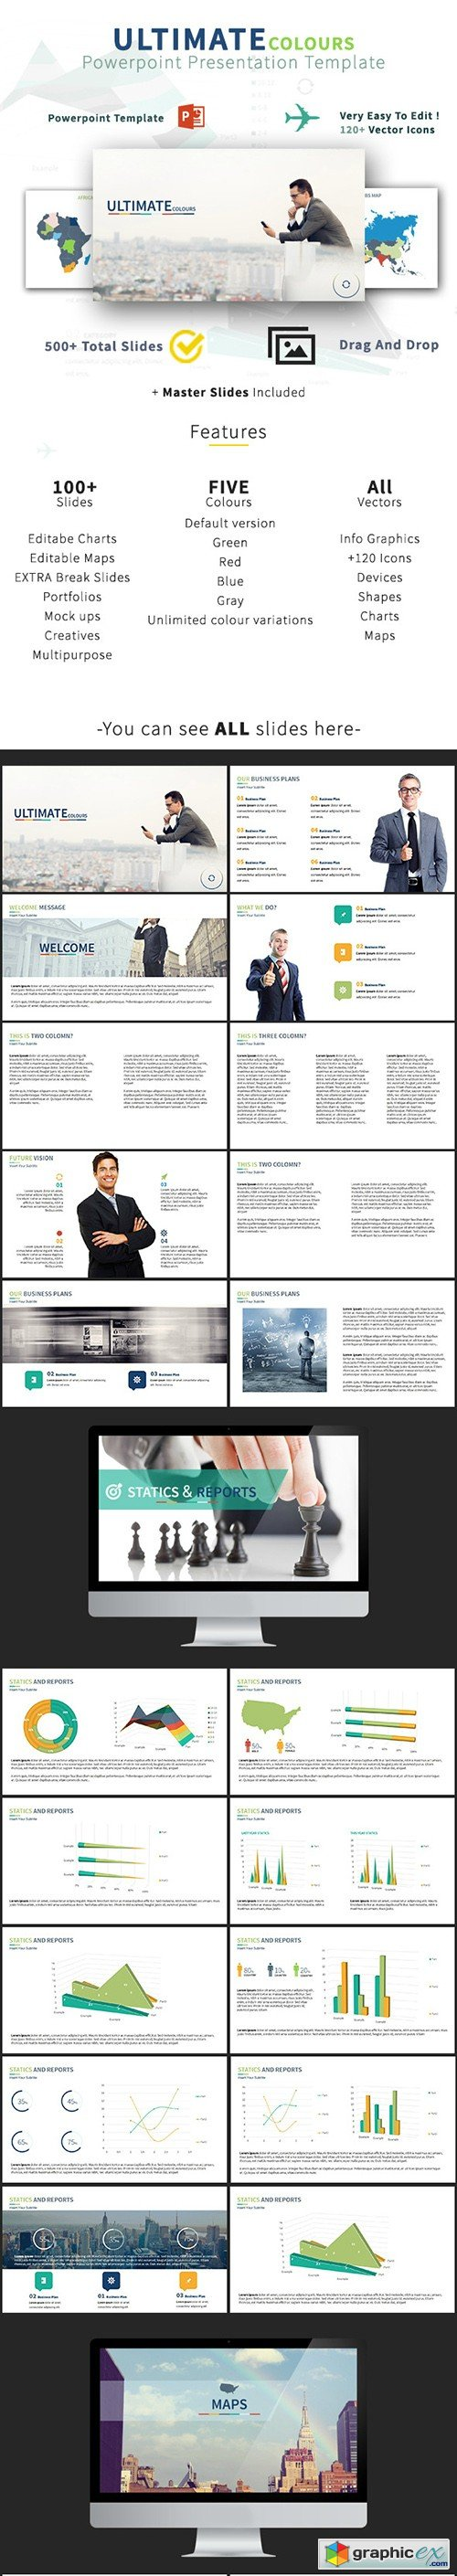 ULTIMATE Colours Multipurpose Business Powerpoint